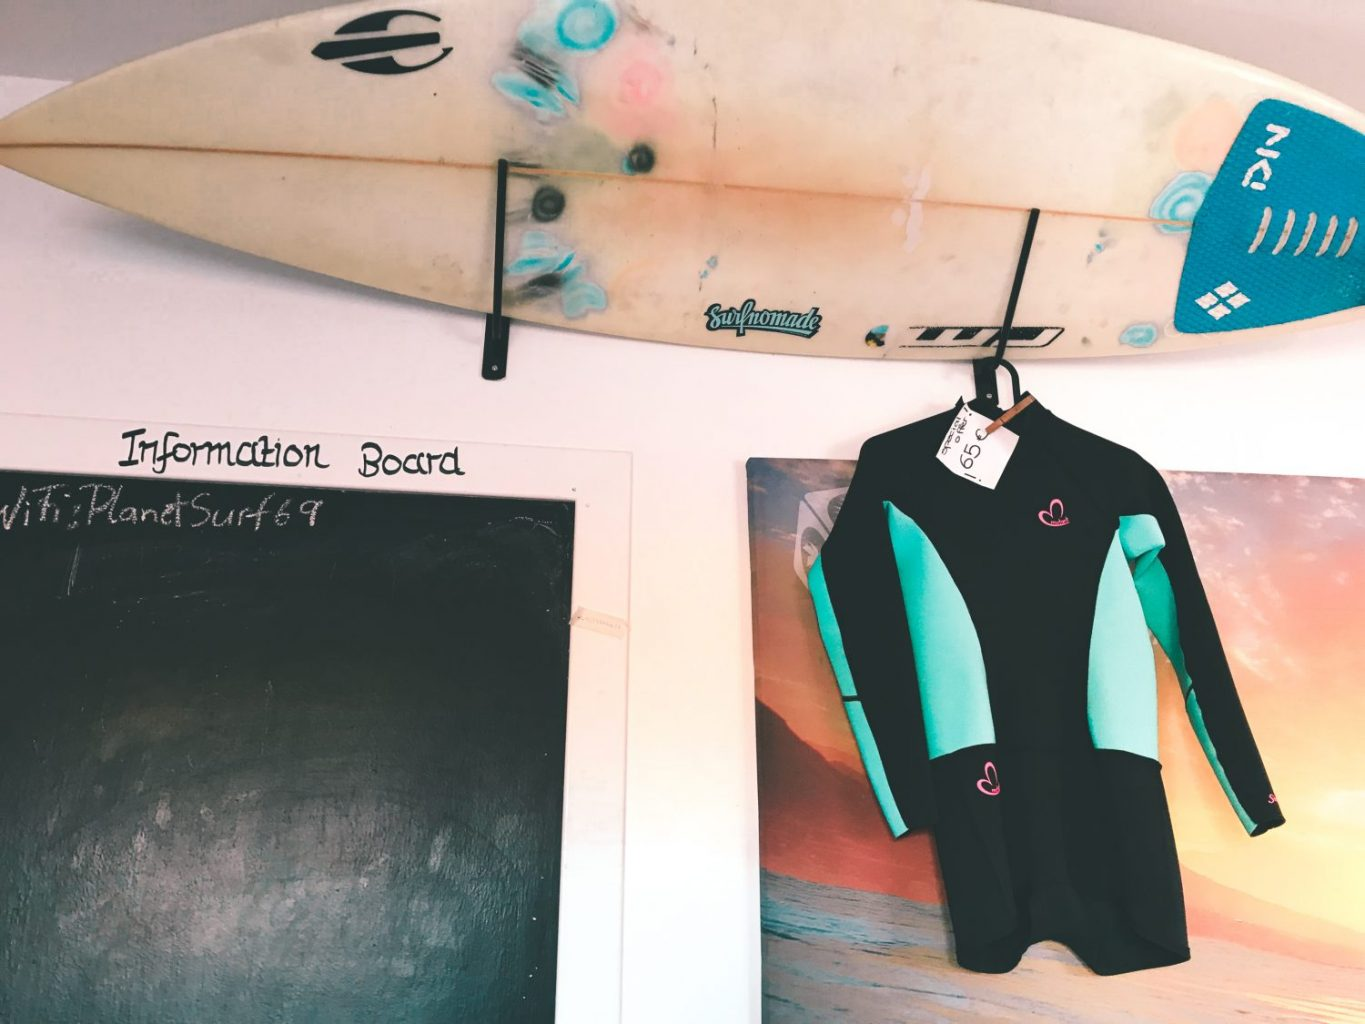 A full review of Planet Surf Camps Fuerteventura. If you're planning to surf in the Canary Islands, be sure to read this before you book! #Spain #Surfing #Surfcamp #CanaryIslands